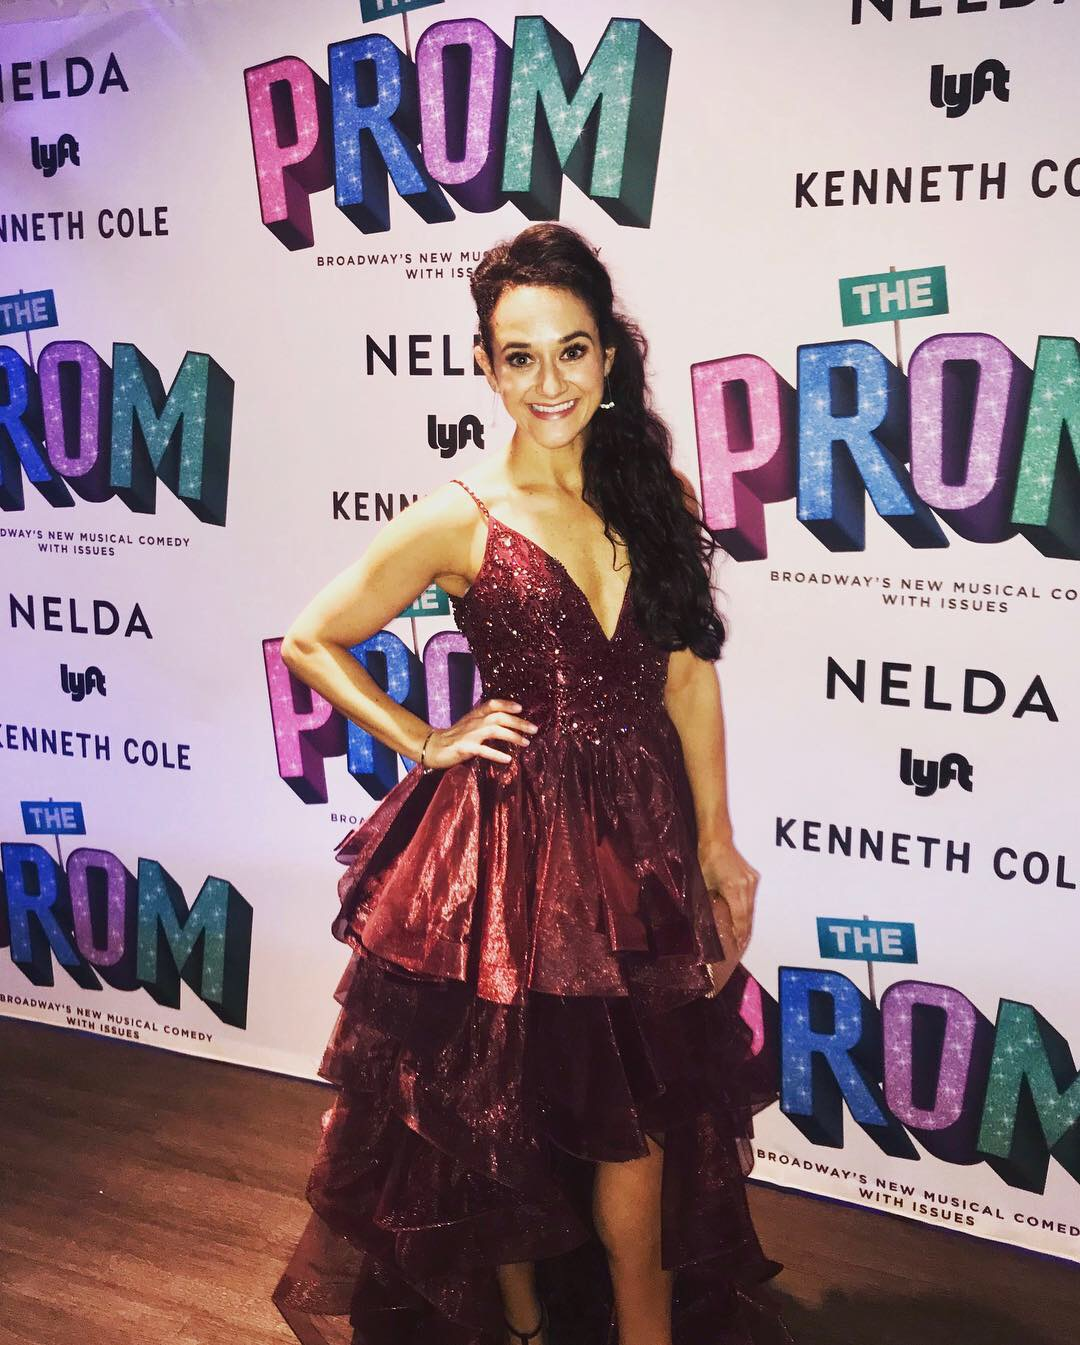 Becca Lee / The Prom Broadway